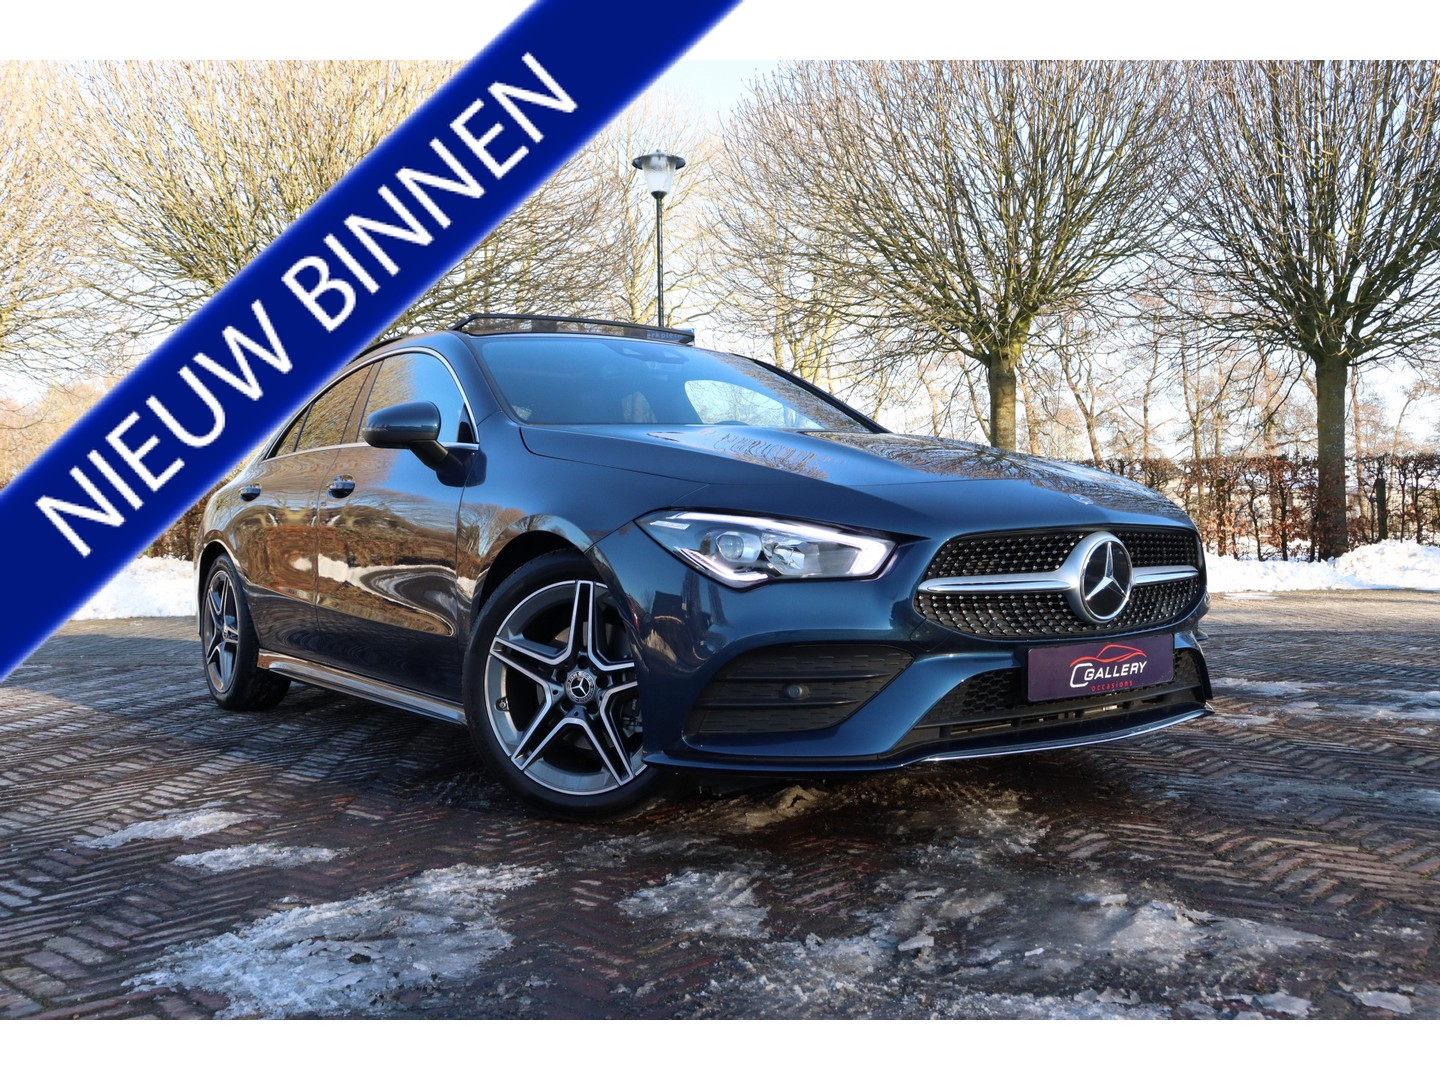 Mercedes-benz Cla-klasse 180 business solution amg edition - pano l ambi light - mb fabrieksgarantie!